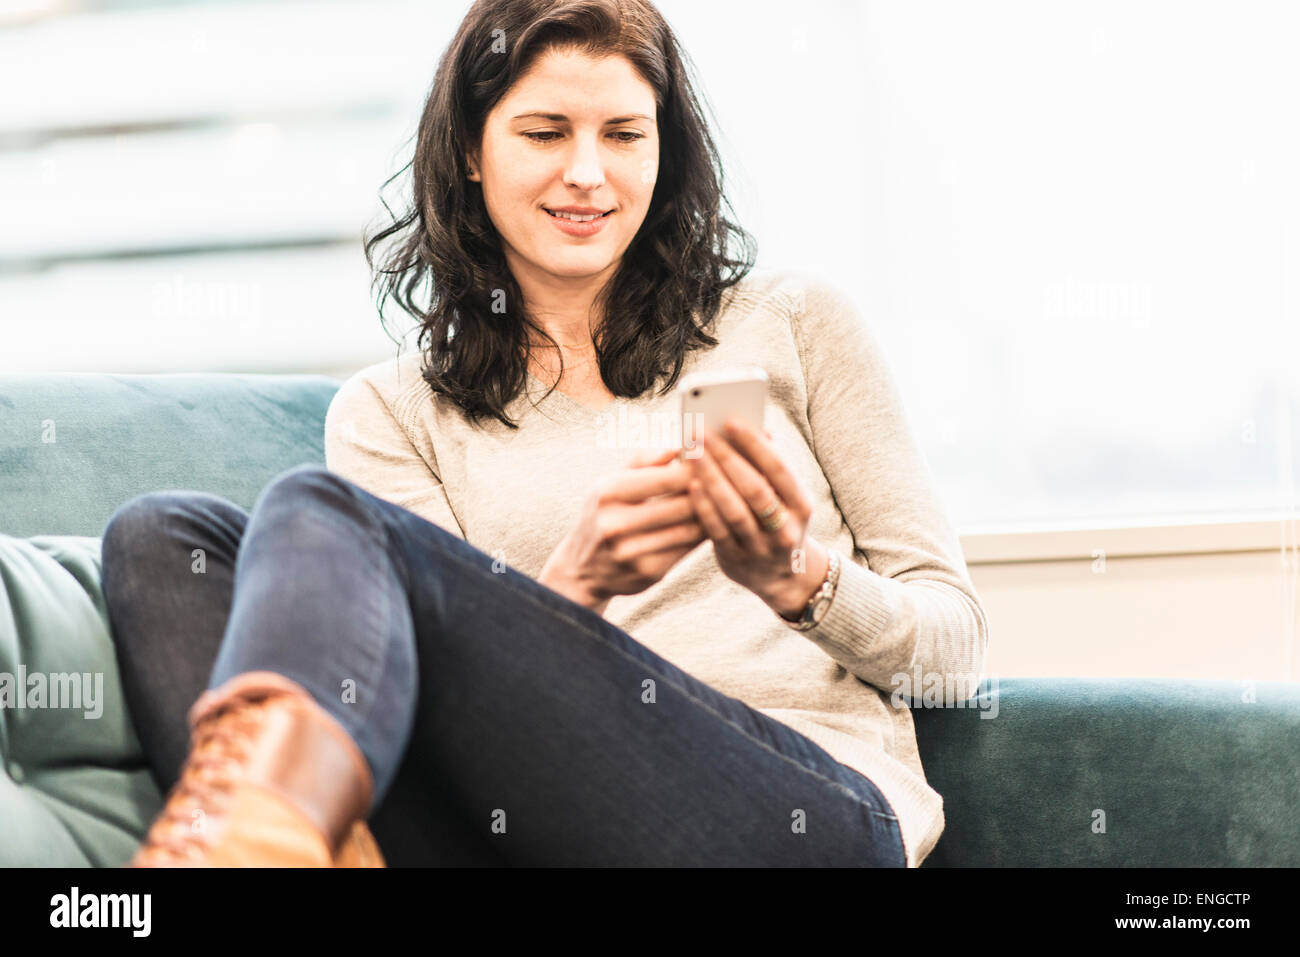 A woman seated with her feet up on a sofa, looking at her smart phone. - Stock Image